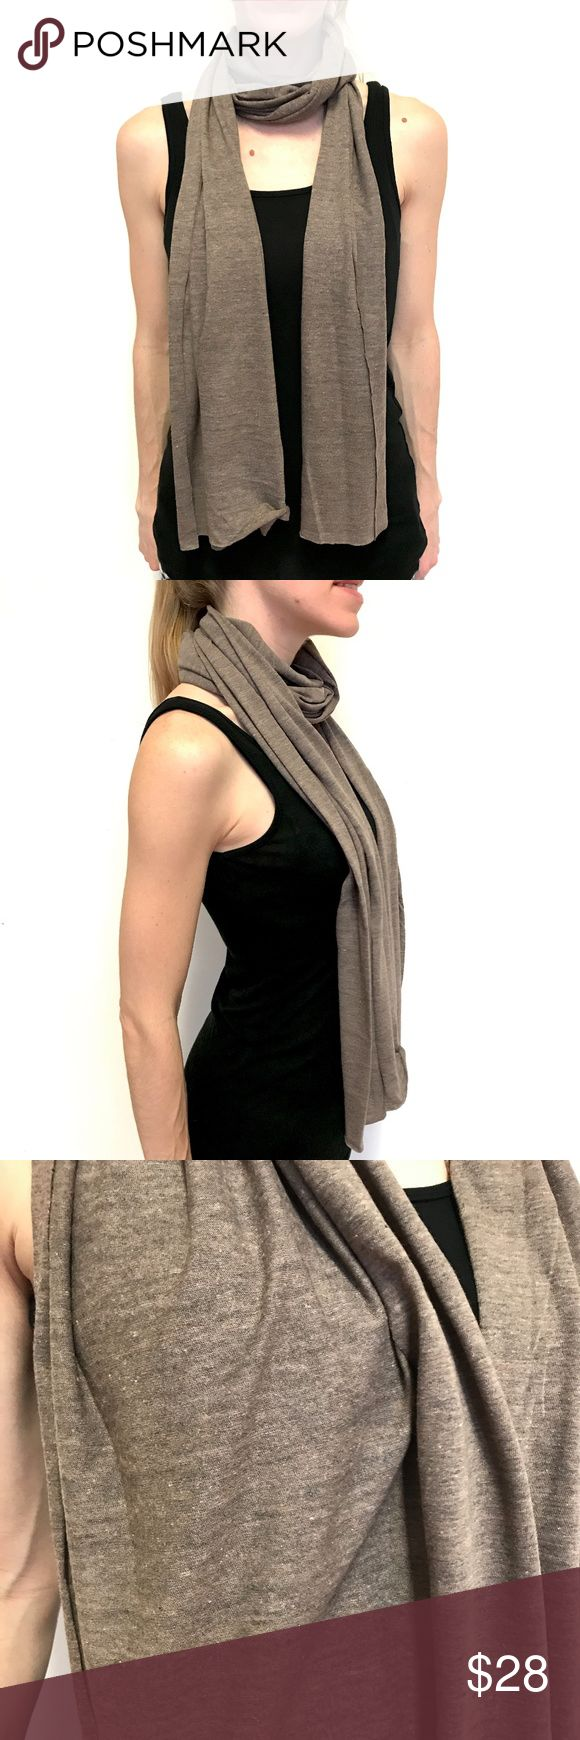 """New American Apparel Brown Skinny Scarf NEW American Apparel Skinny Scarf Brown Long Cotton Hipster Neck Head Fashion  American Apparel's classic light weight skinny scarf. Heathered brown color - I have more colors in my Closet! :)  Approx. Dimensions: 16""""x90""""  Can be used as an scarf, neck wrap, head scarf, or dust mask!  Light weight! Fabric content not listed. I think it's mostly cotton.  Great for Fall, Burning Man, and festivals.  Please check out my Trixy Xchange Closet for more…"""